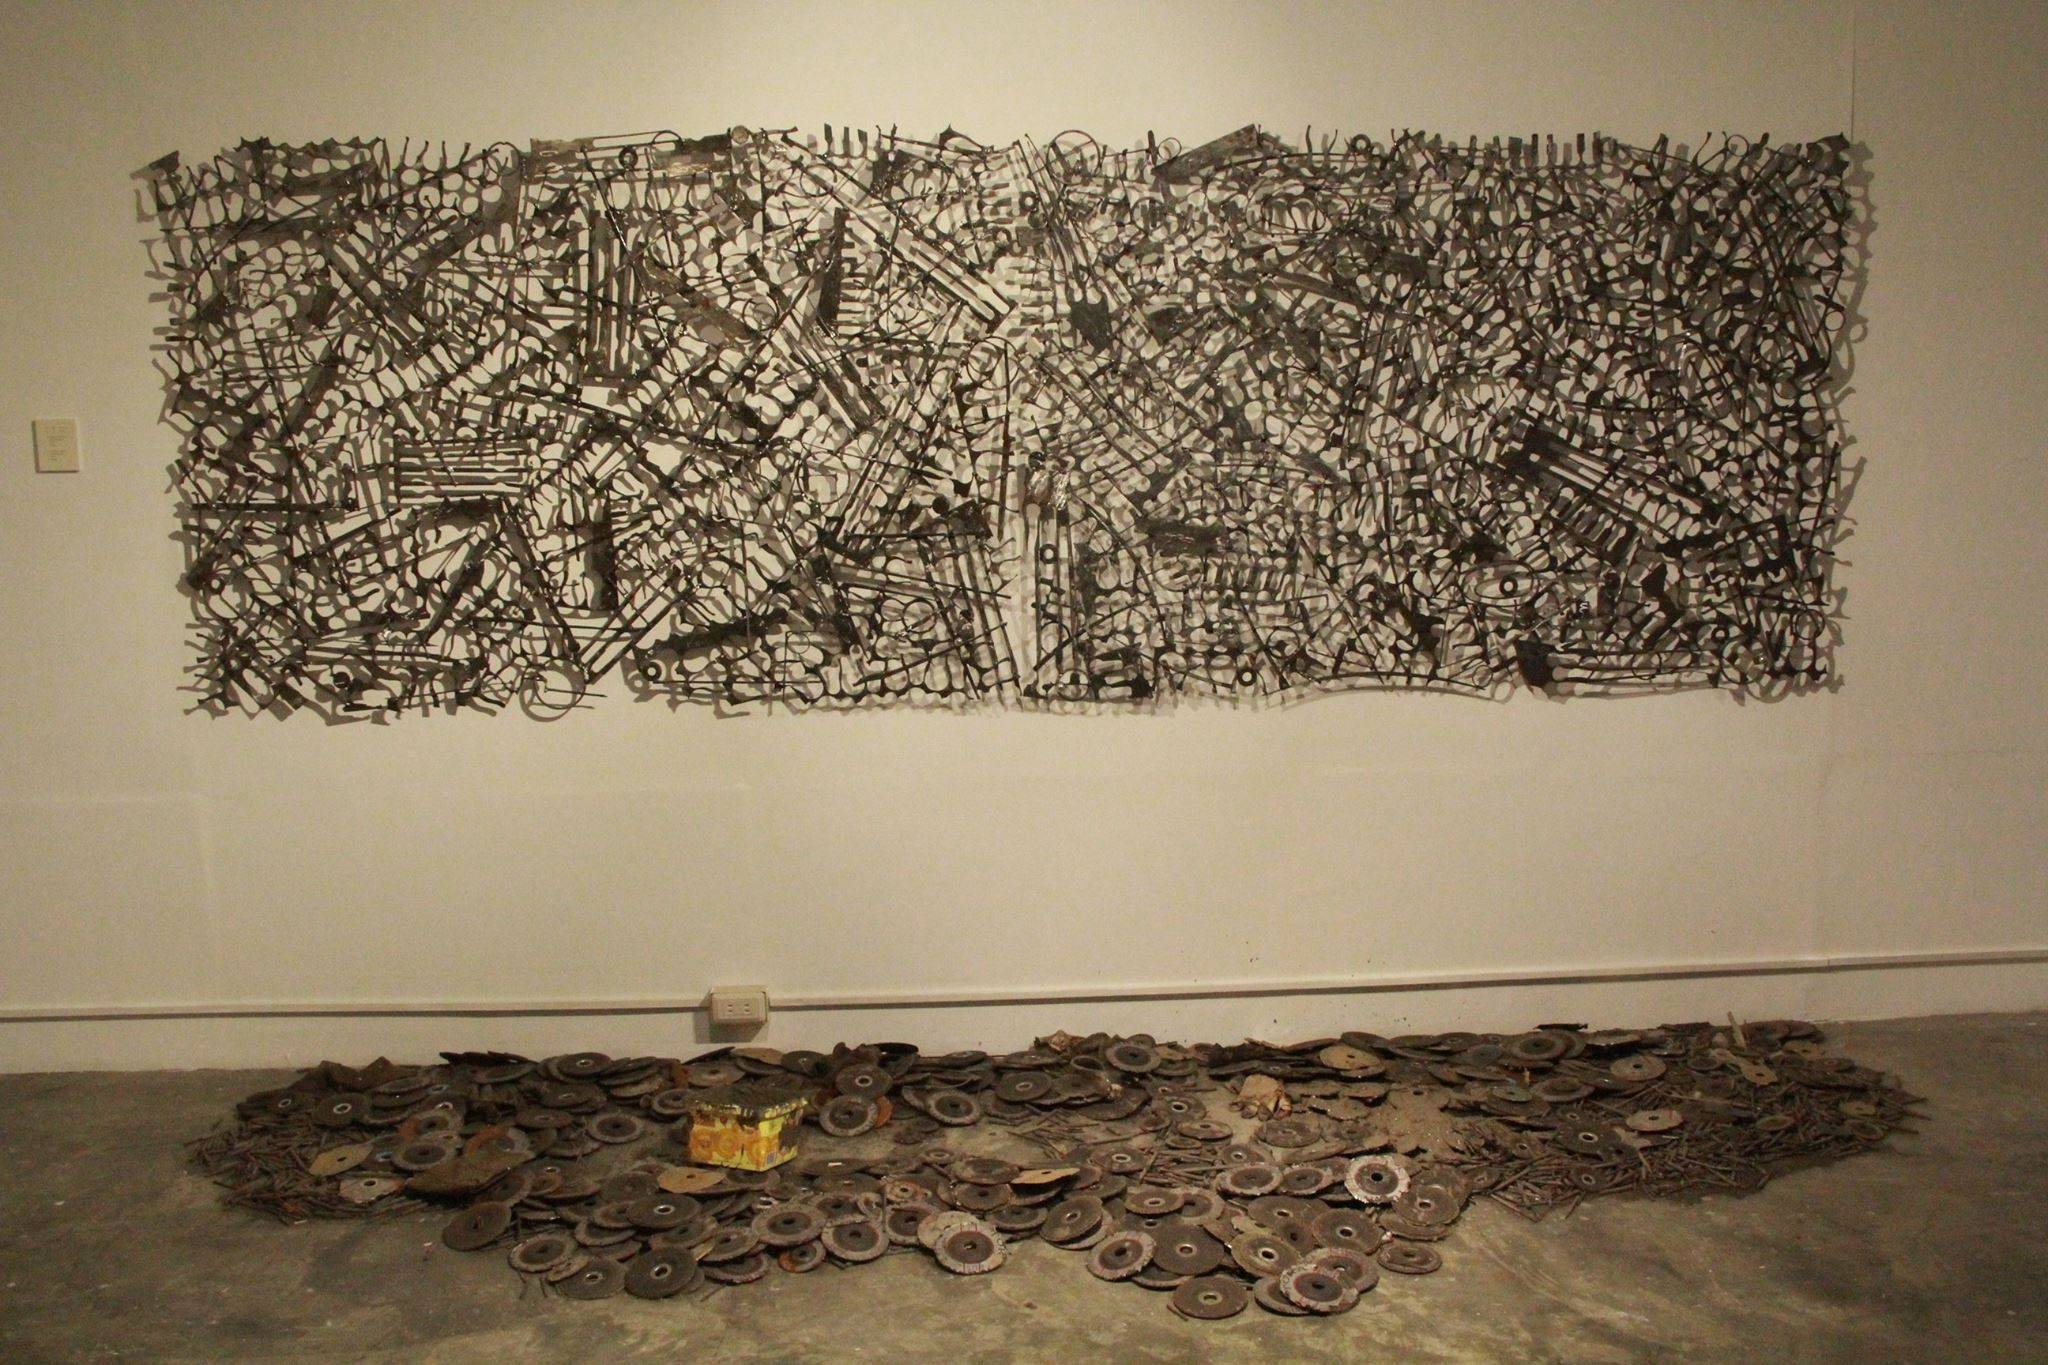 Sam Penaso: Multifaceted Sculptor, Visual & Performance Artist Intended For Most Current Filipino Wall Art (View 3 of 30)